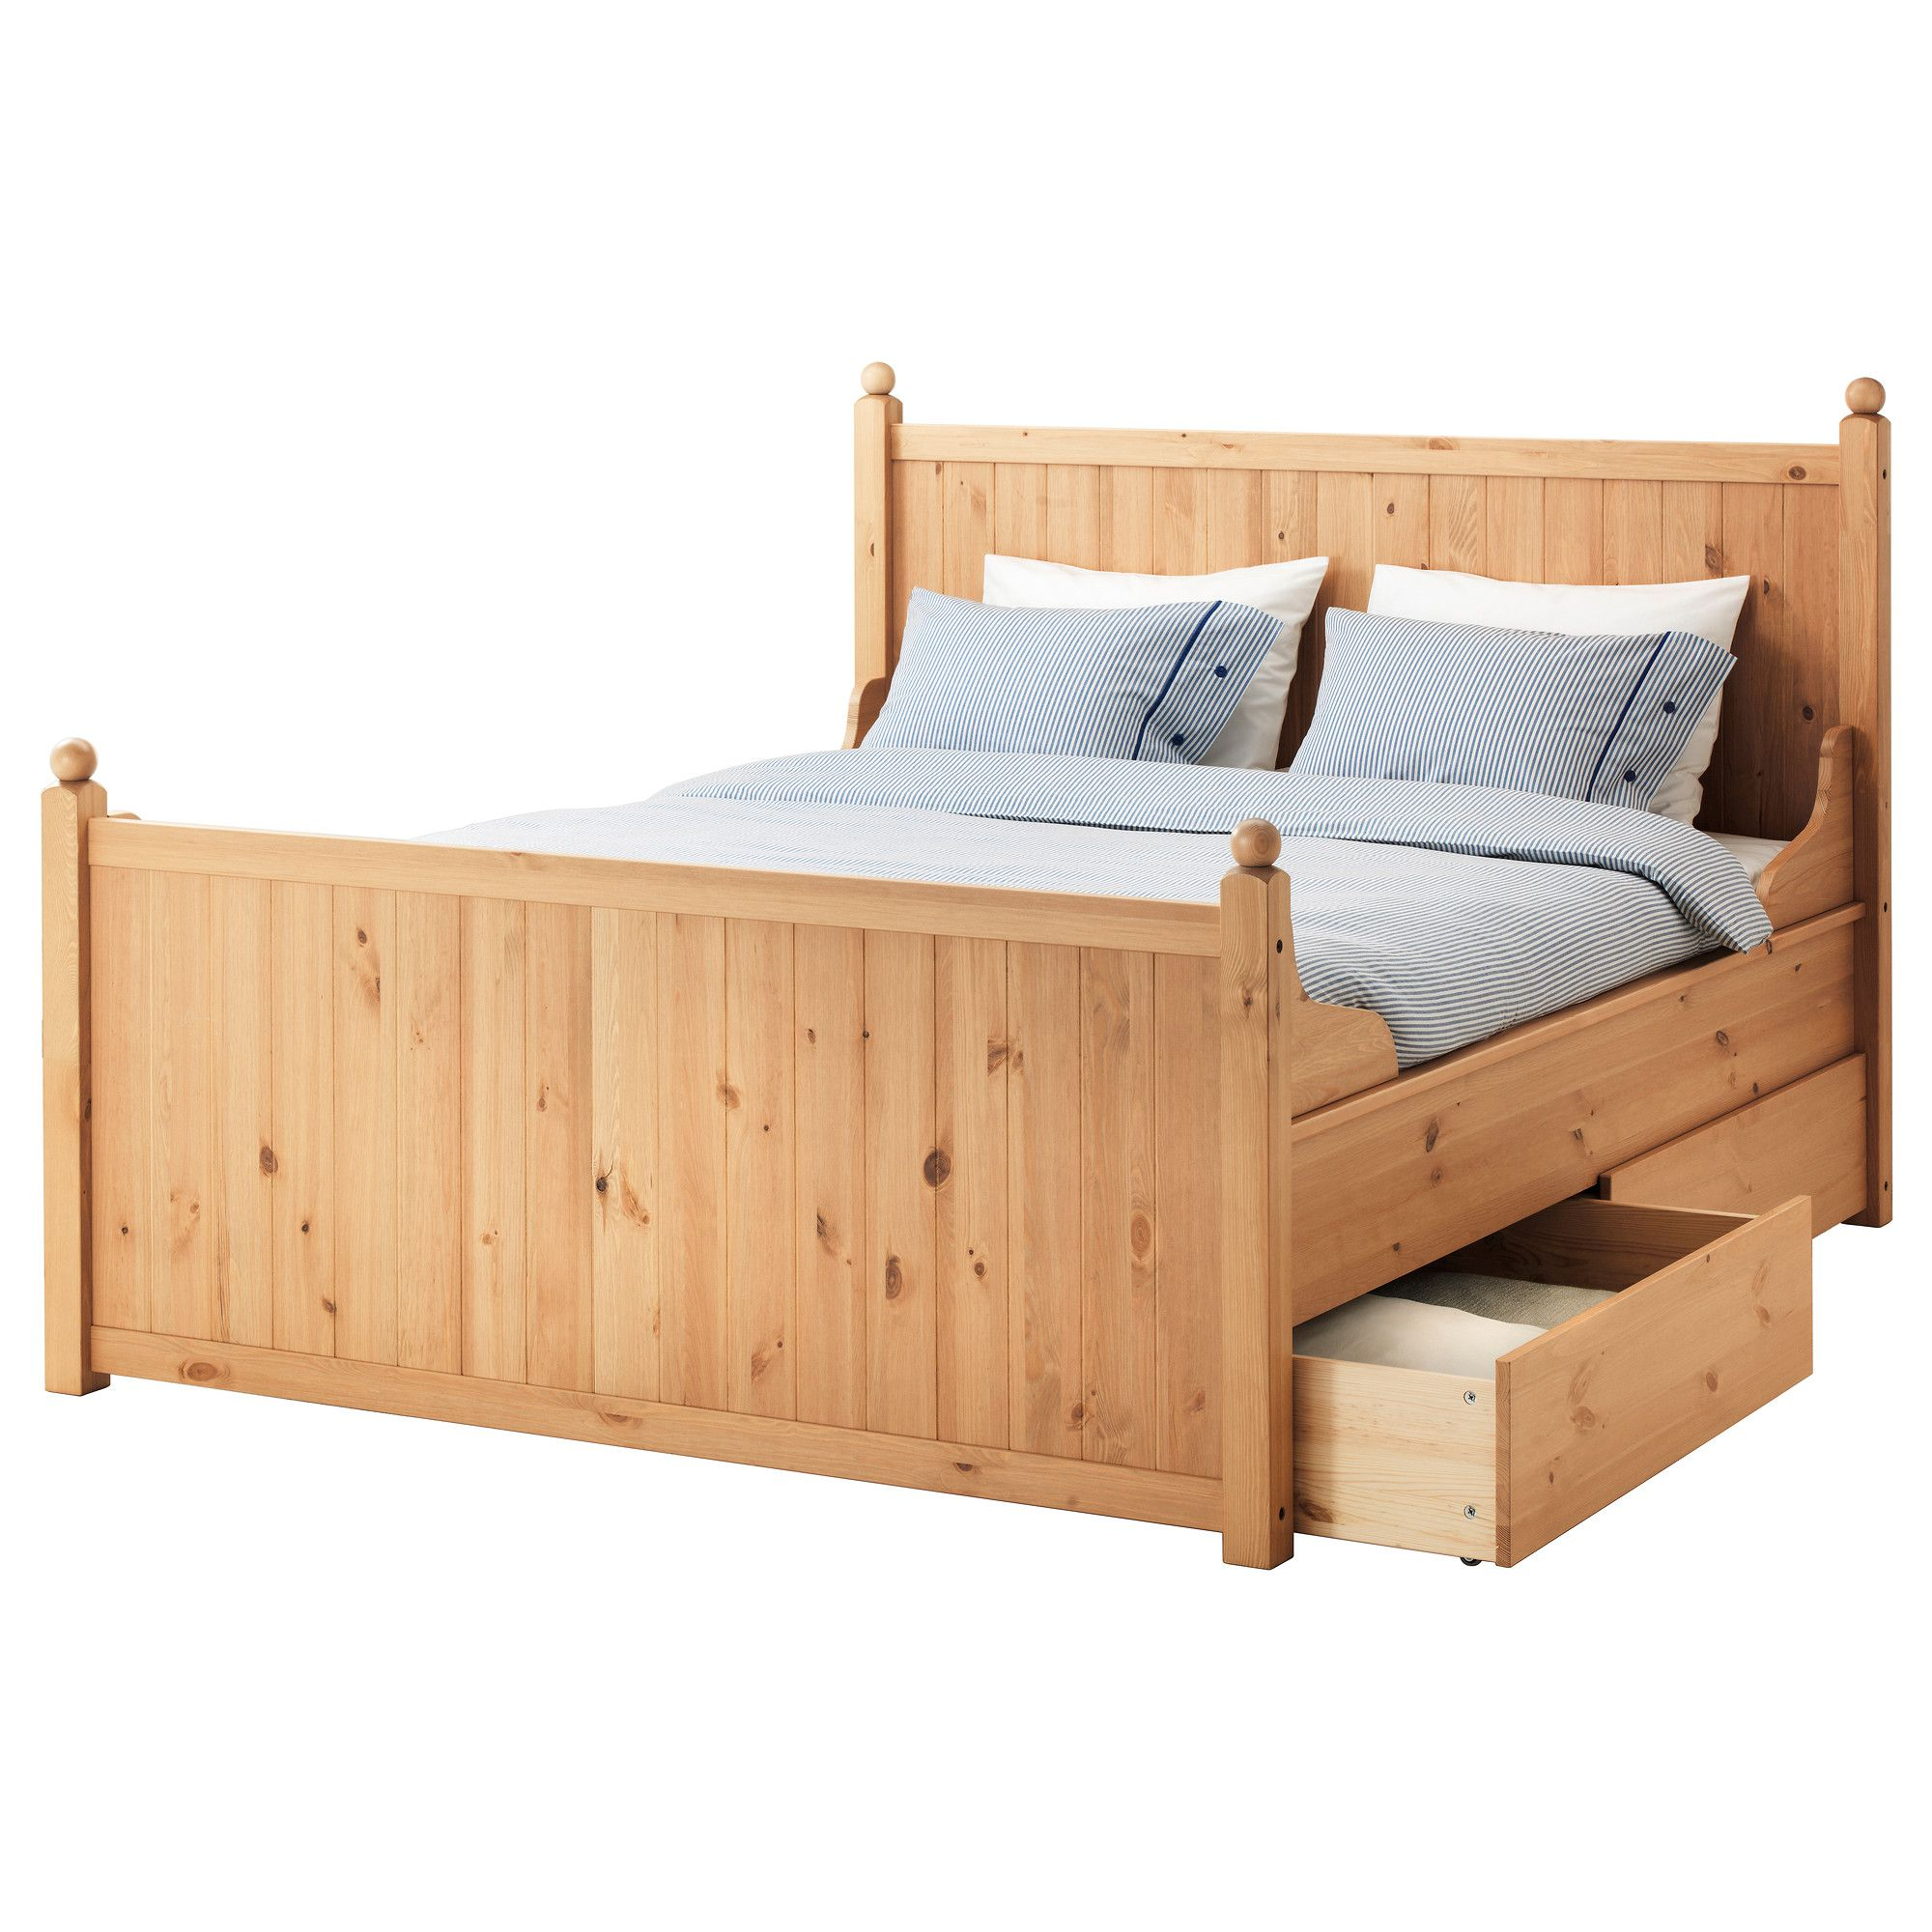 HURDAL Bed frame with 4 storage boxes - Queen, Lönset - IKEA | IKEA ...